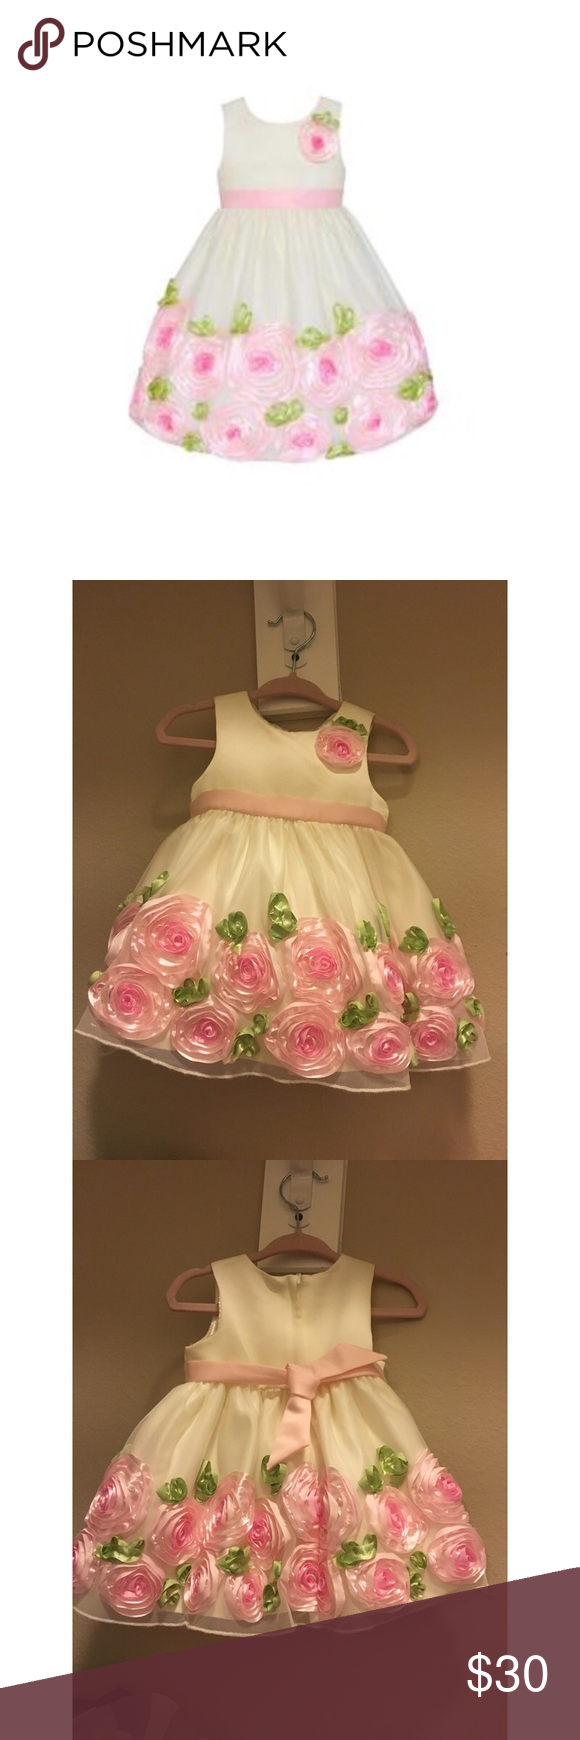 American Princess Baby Dress New W Out Tag For A Formal